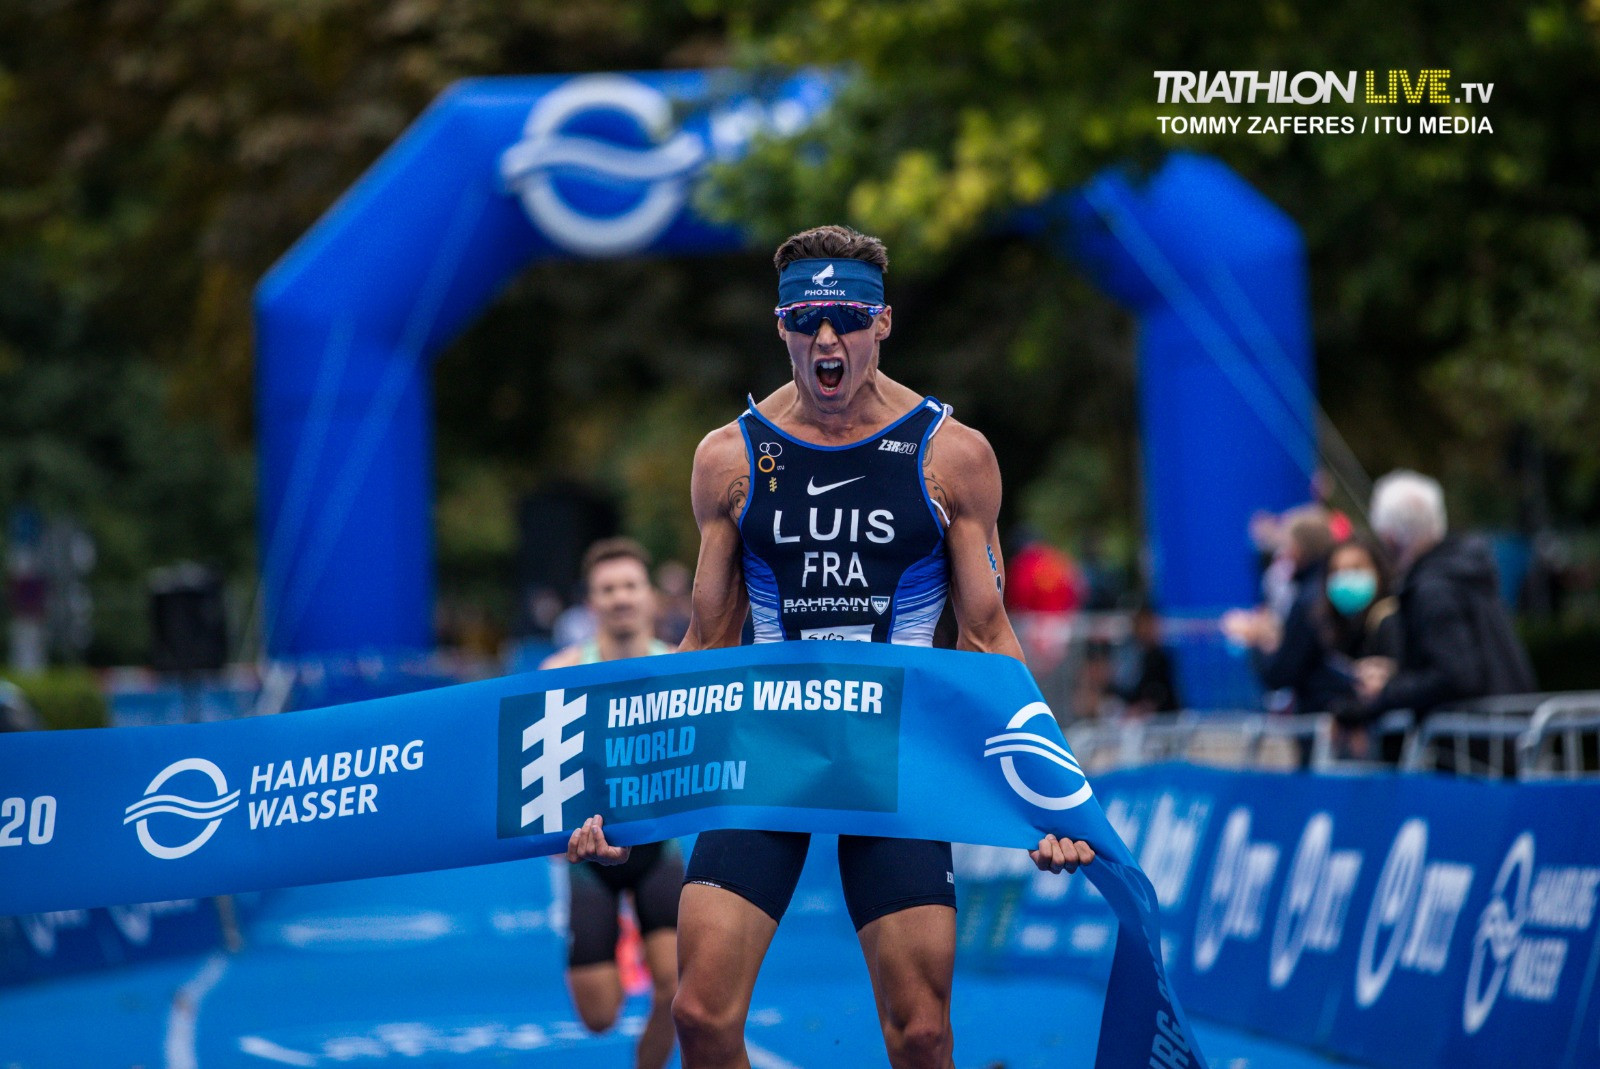 Luis and Taylor-Brown claim triathlon World Championship titles in Hamburg